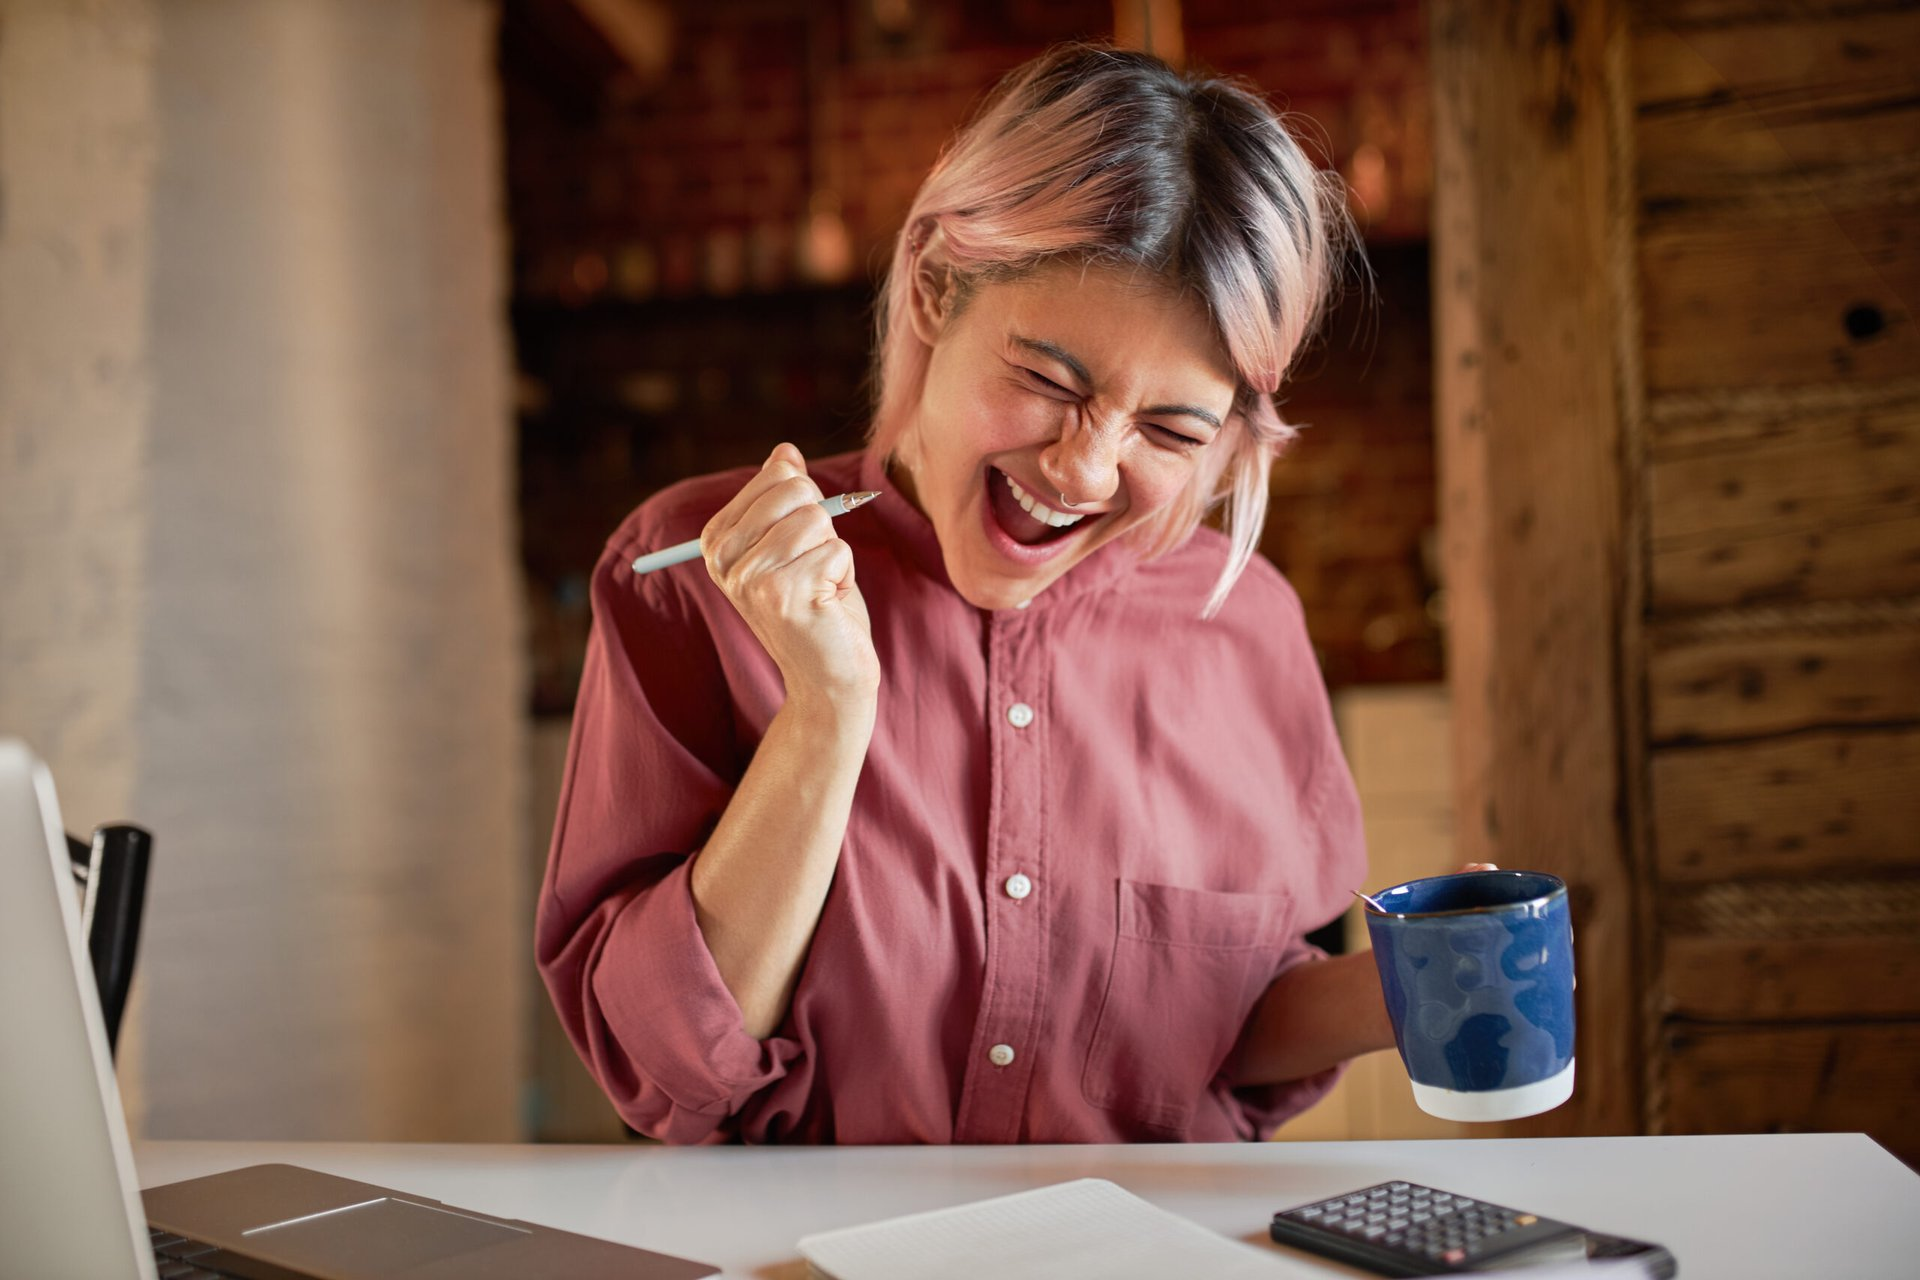 Excited woman working on taxes